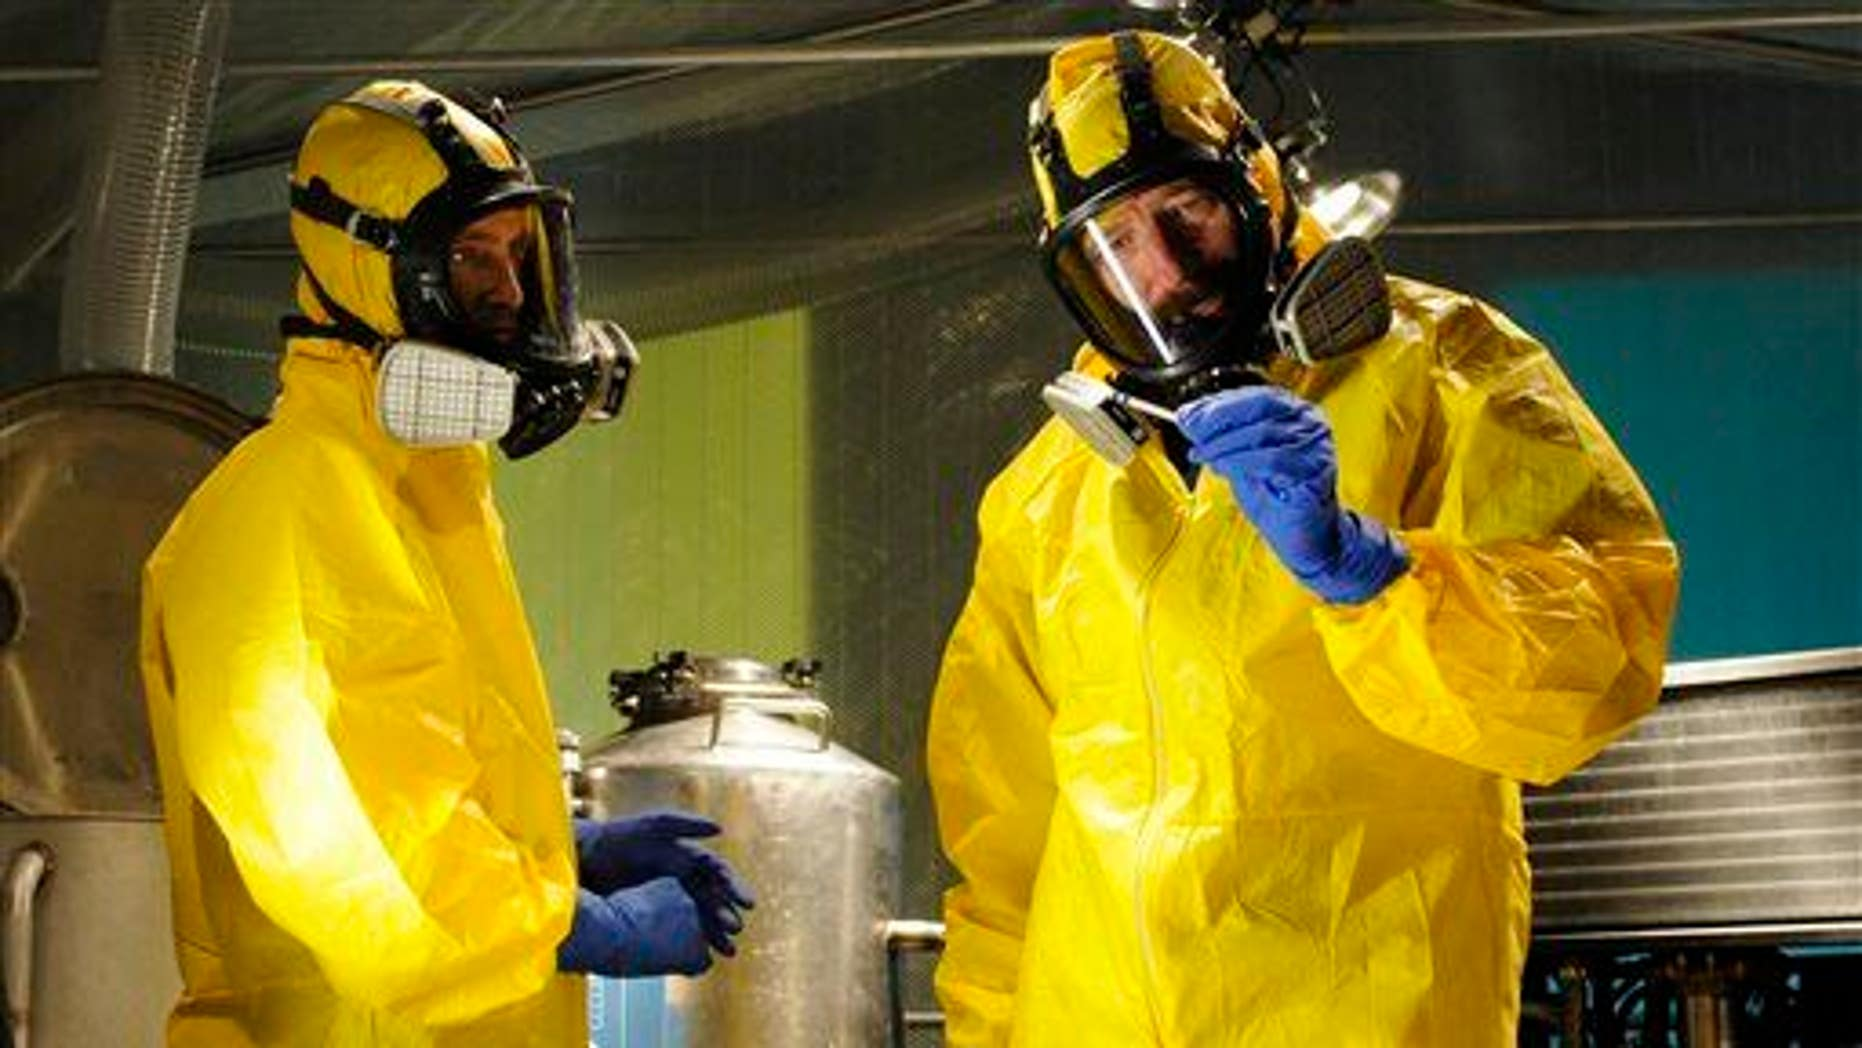 """Jesse Pinkman, played by Aaron Paul, left, and Walter White, played by Bryan Cranston, cooking meth in a home being fumigated in the fifth season of """"Breaking Bad."""""""